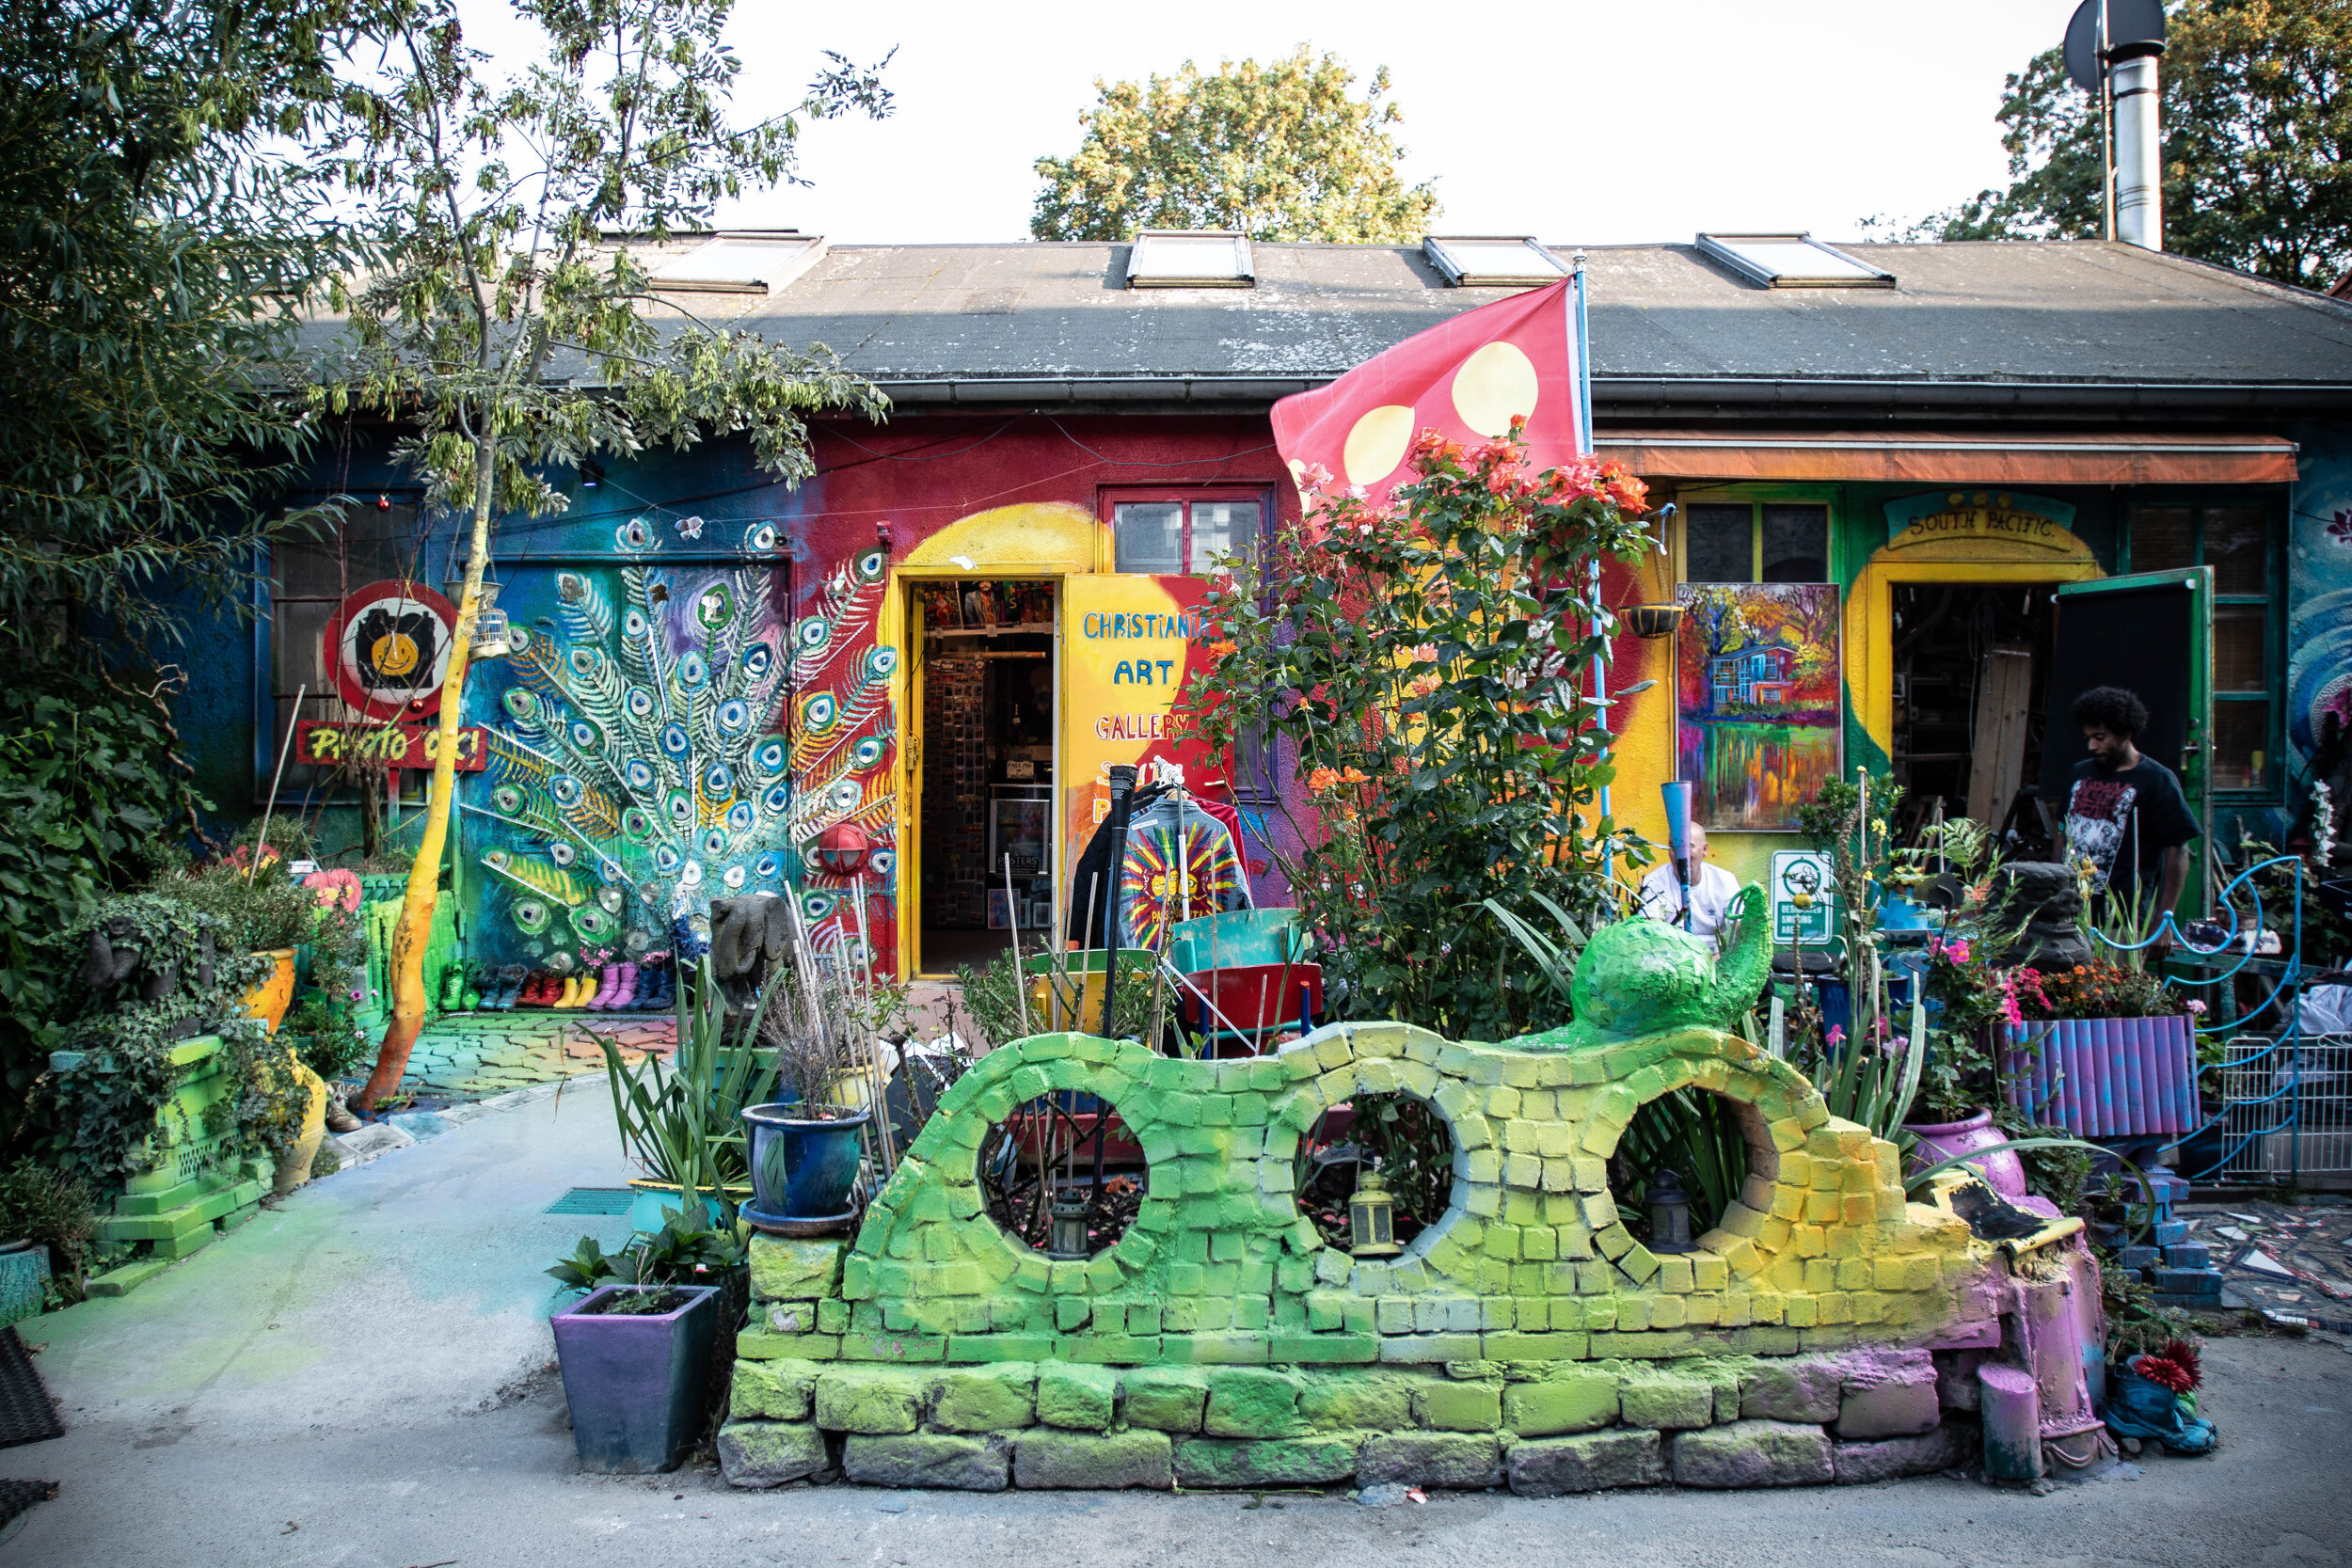 Christiania is truly a unique place in Copenhagen, should not be missed while you are visiting.